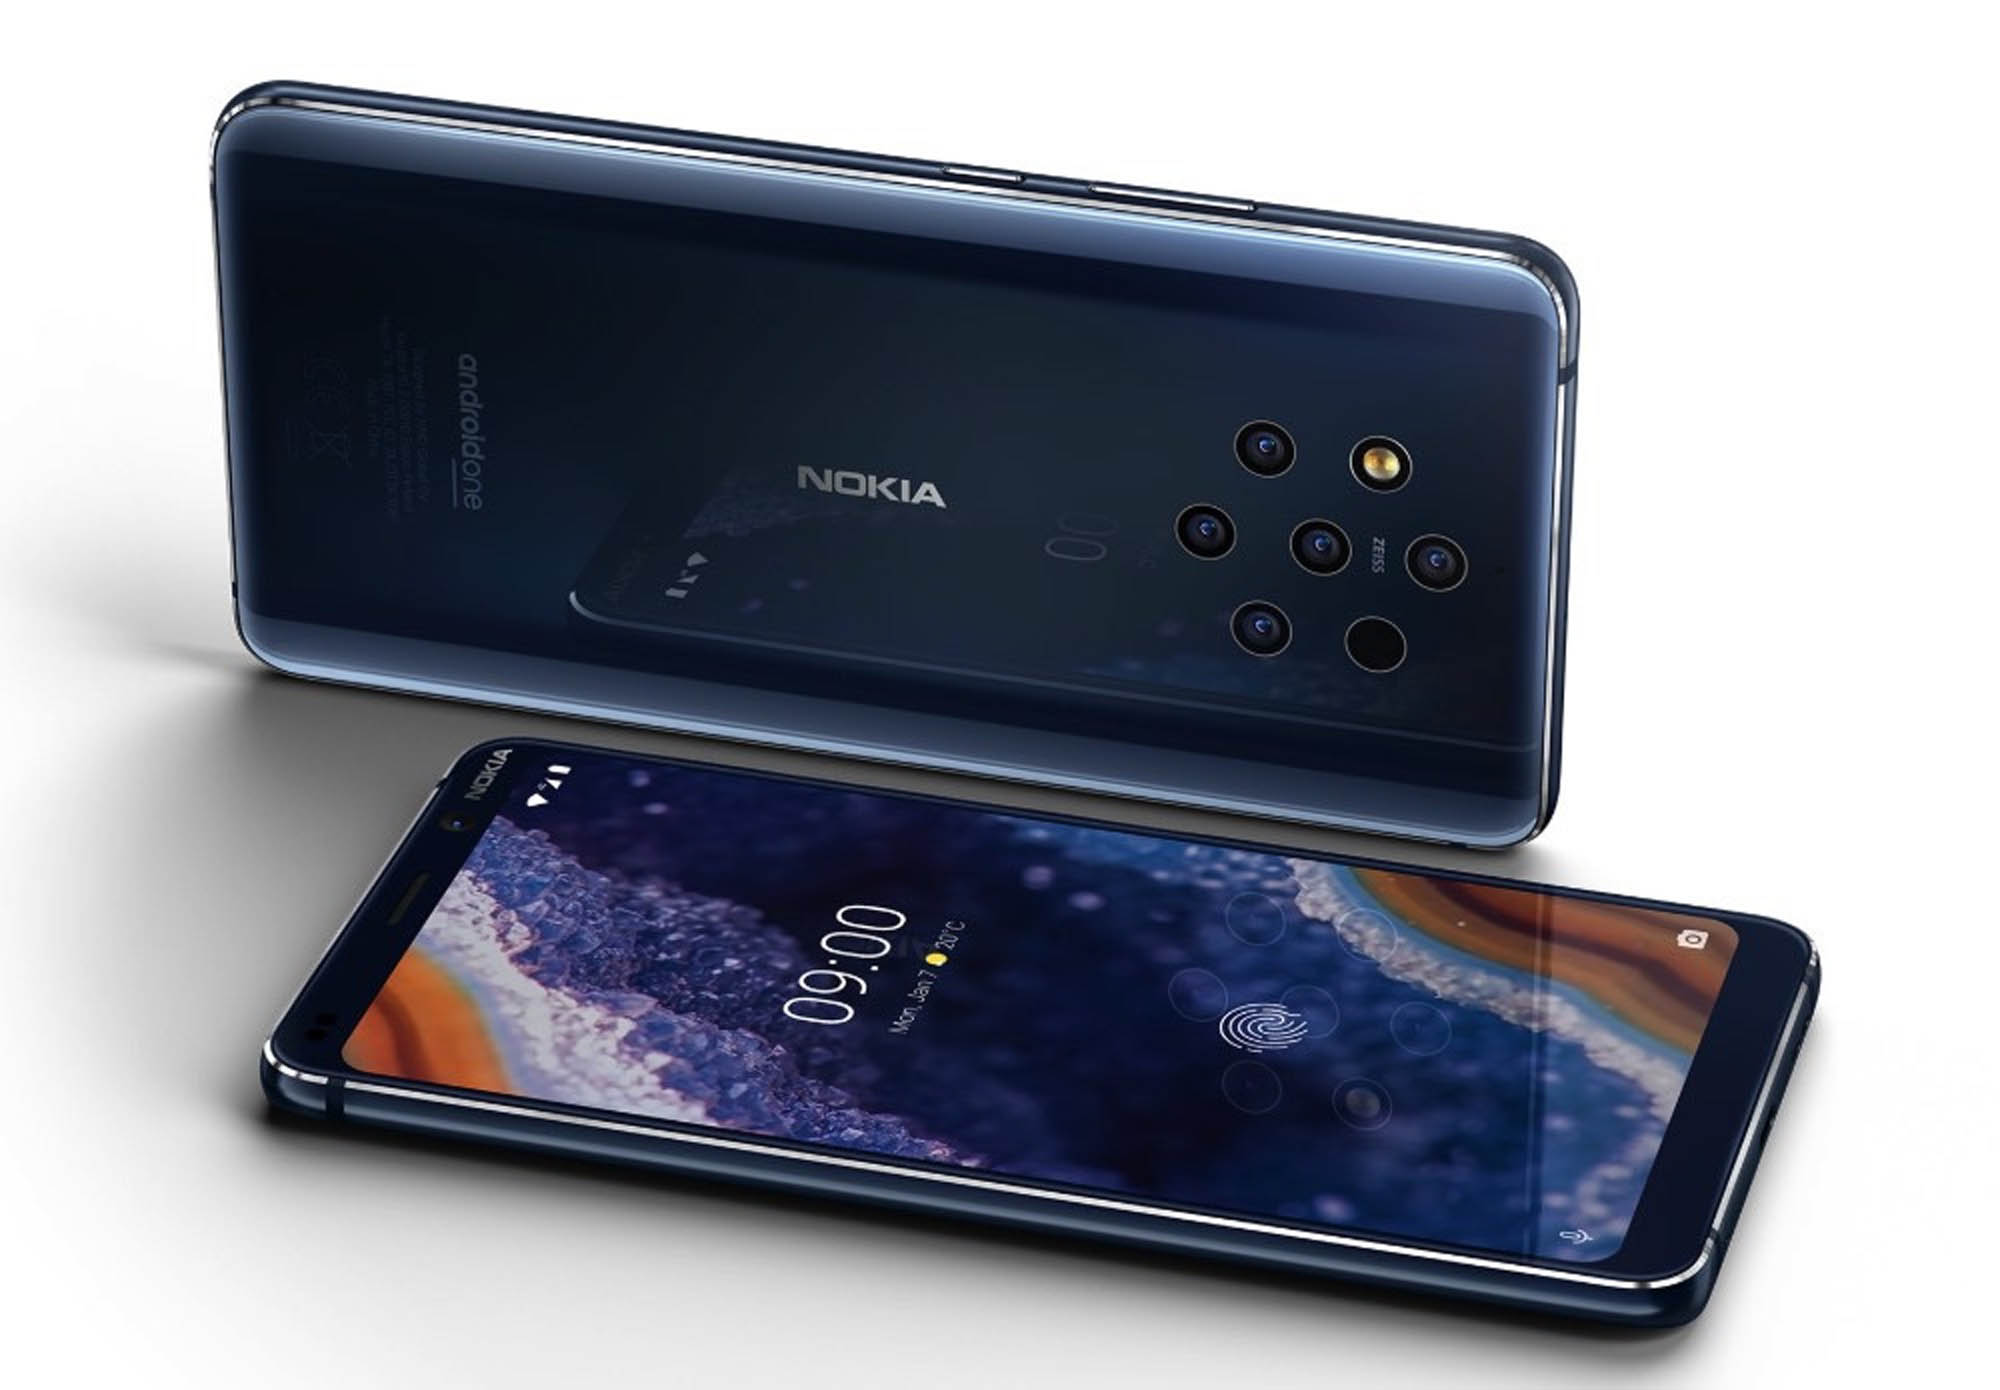 Secret behind 5 camera lenses in Nokia 9